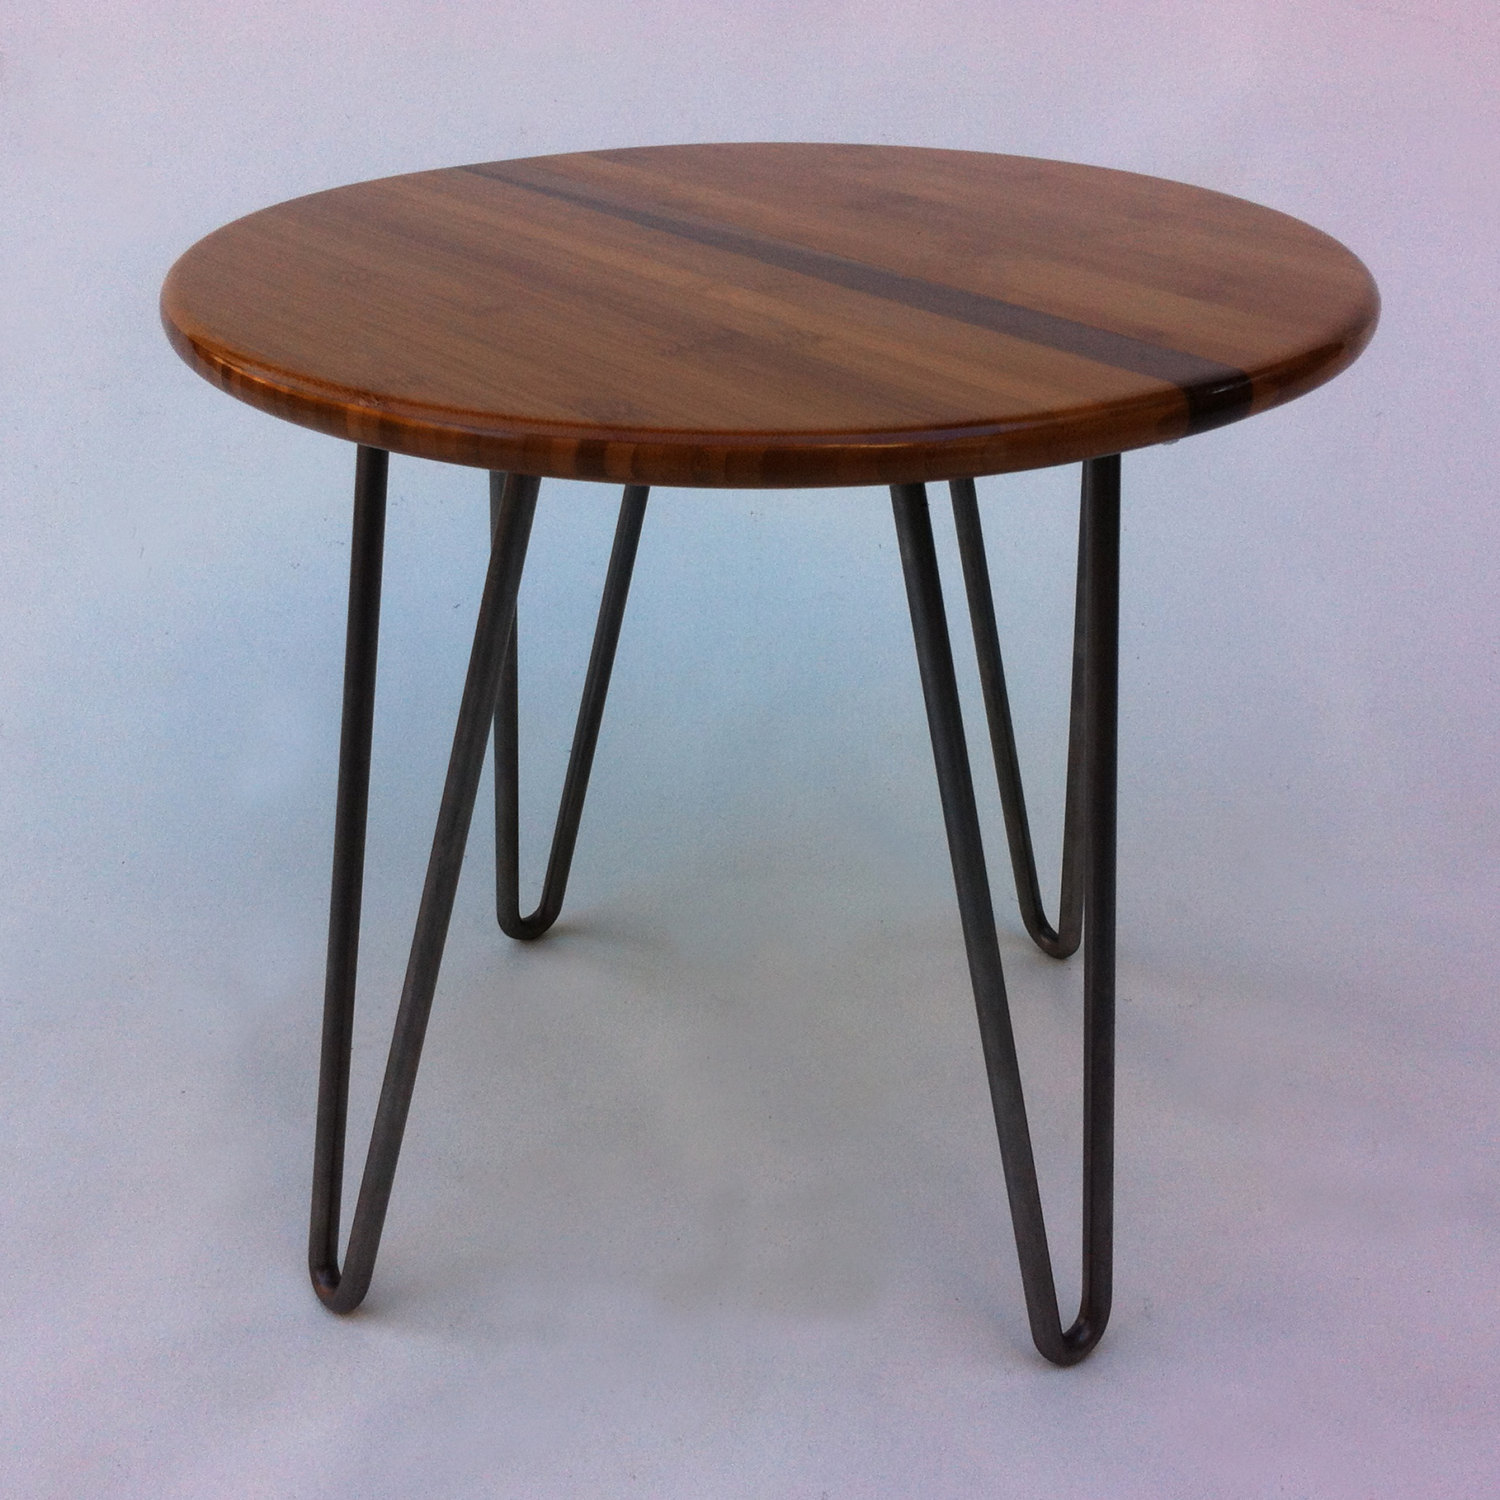 50″ Kidney Bean Cocktail Table – Mid Century Modern Coffee Table